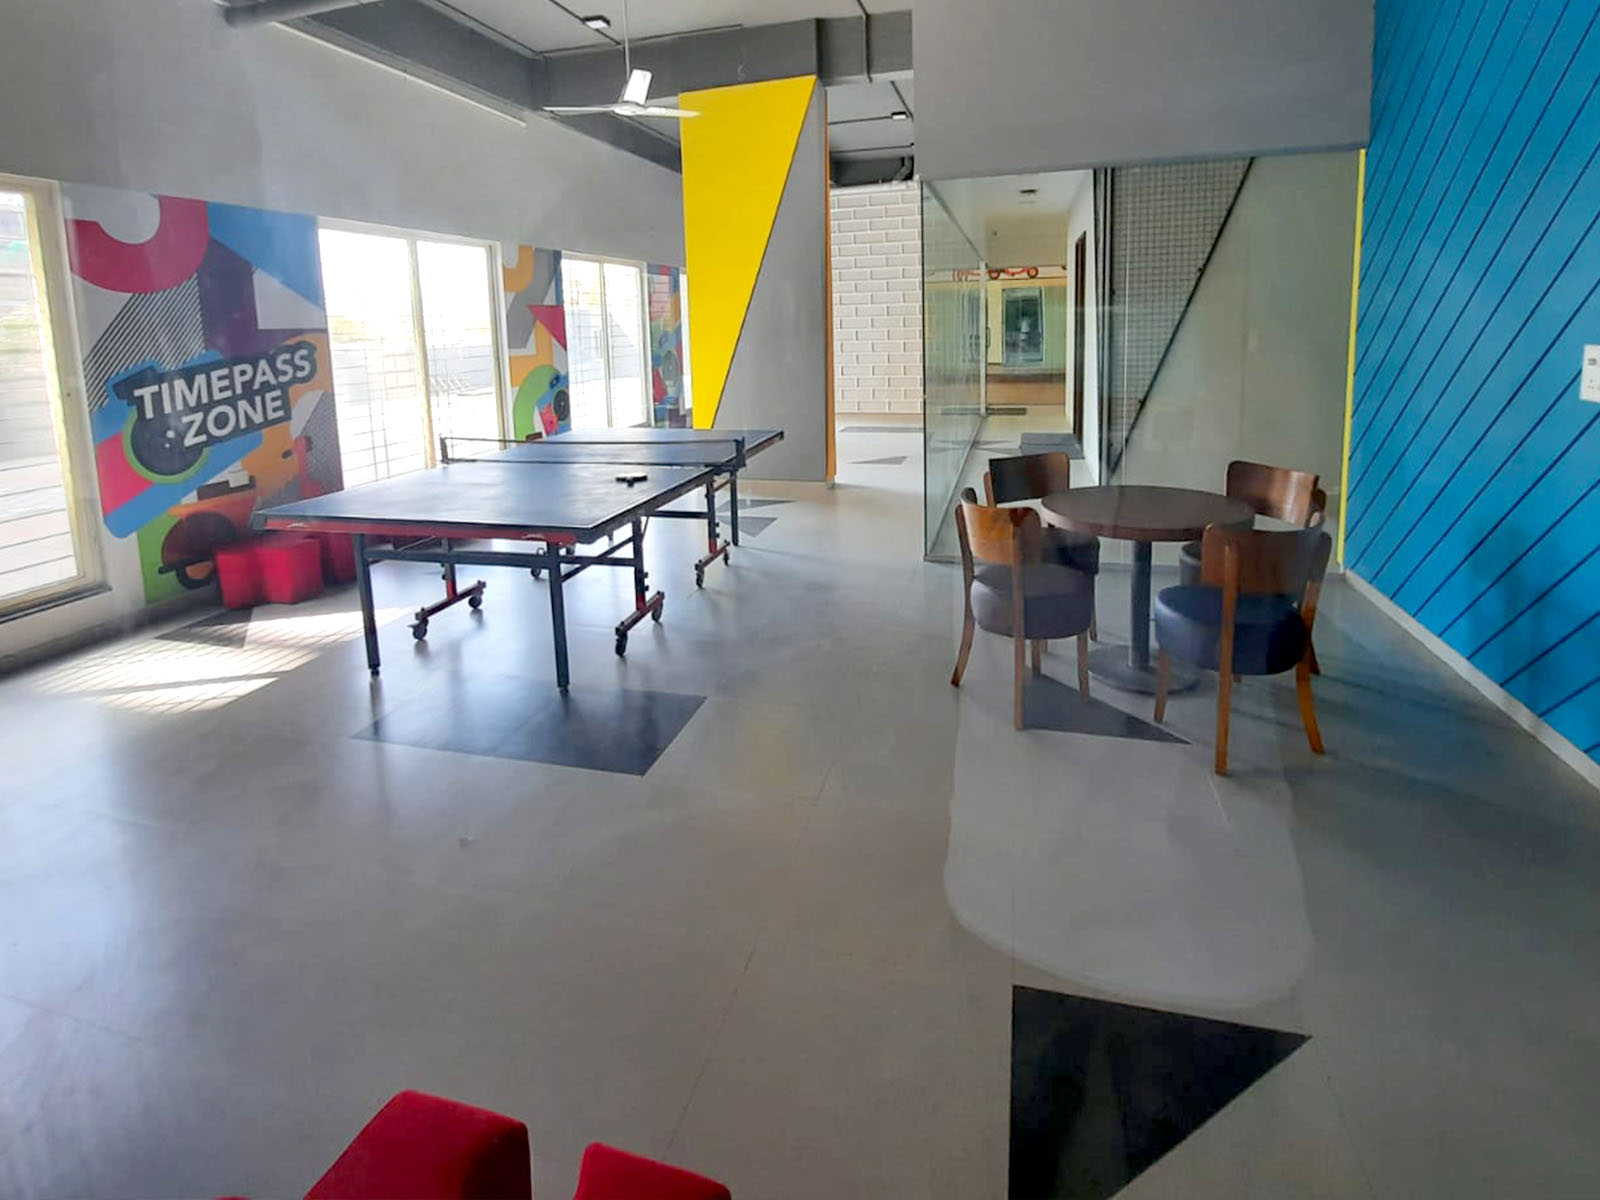 Hostel with game room